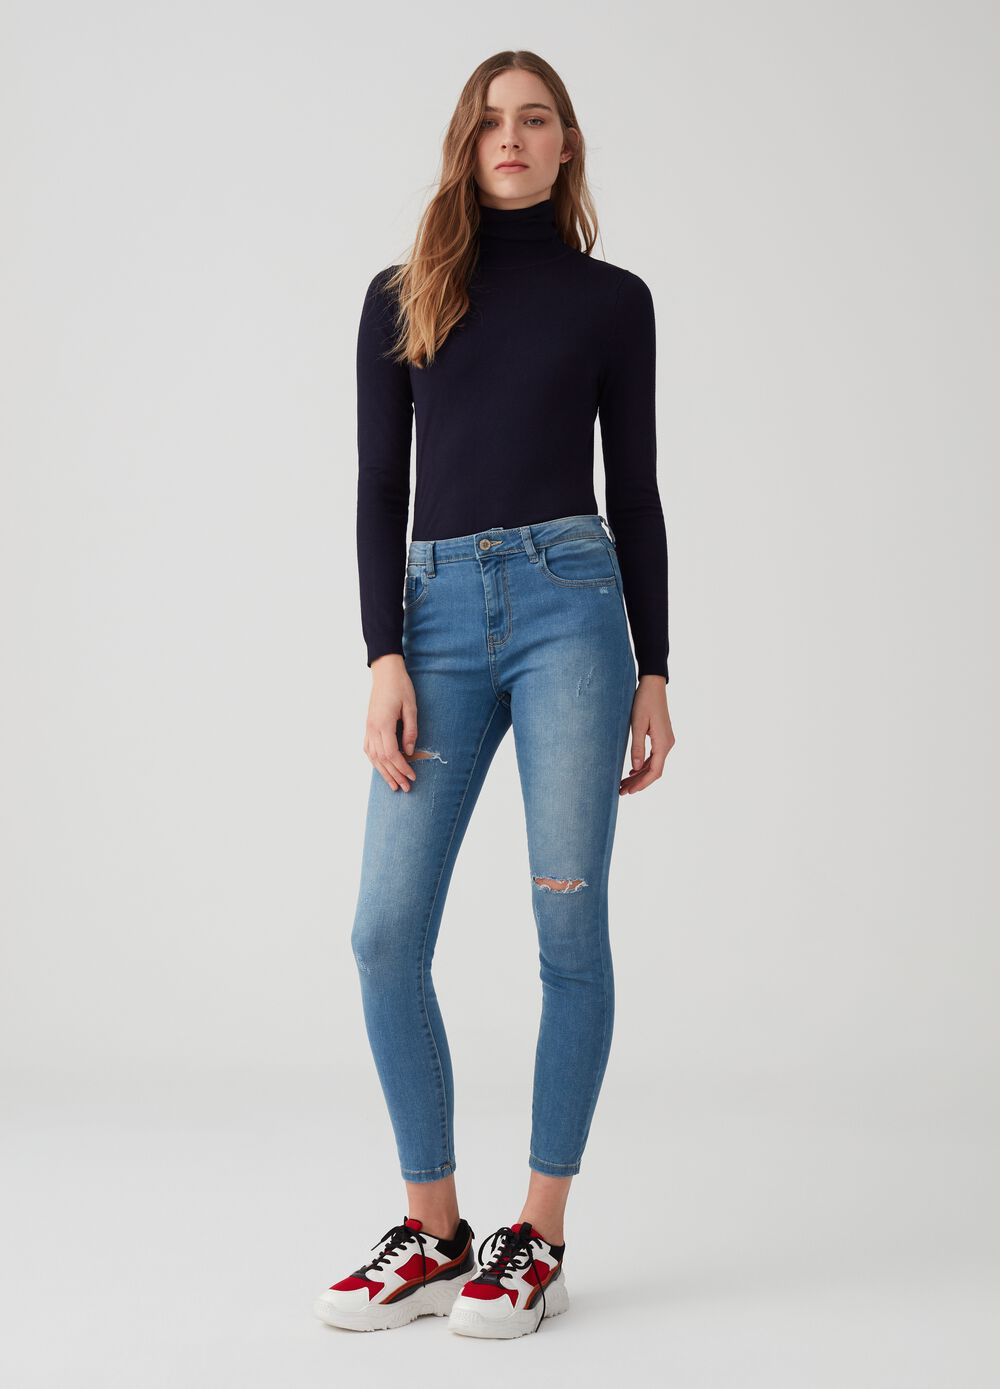 Solid colour superskinny jeans with rips